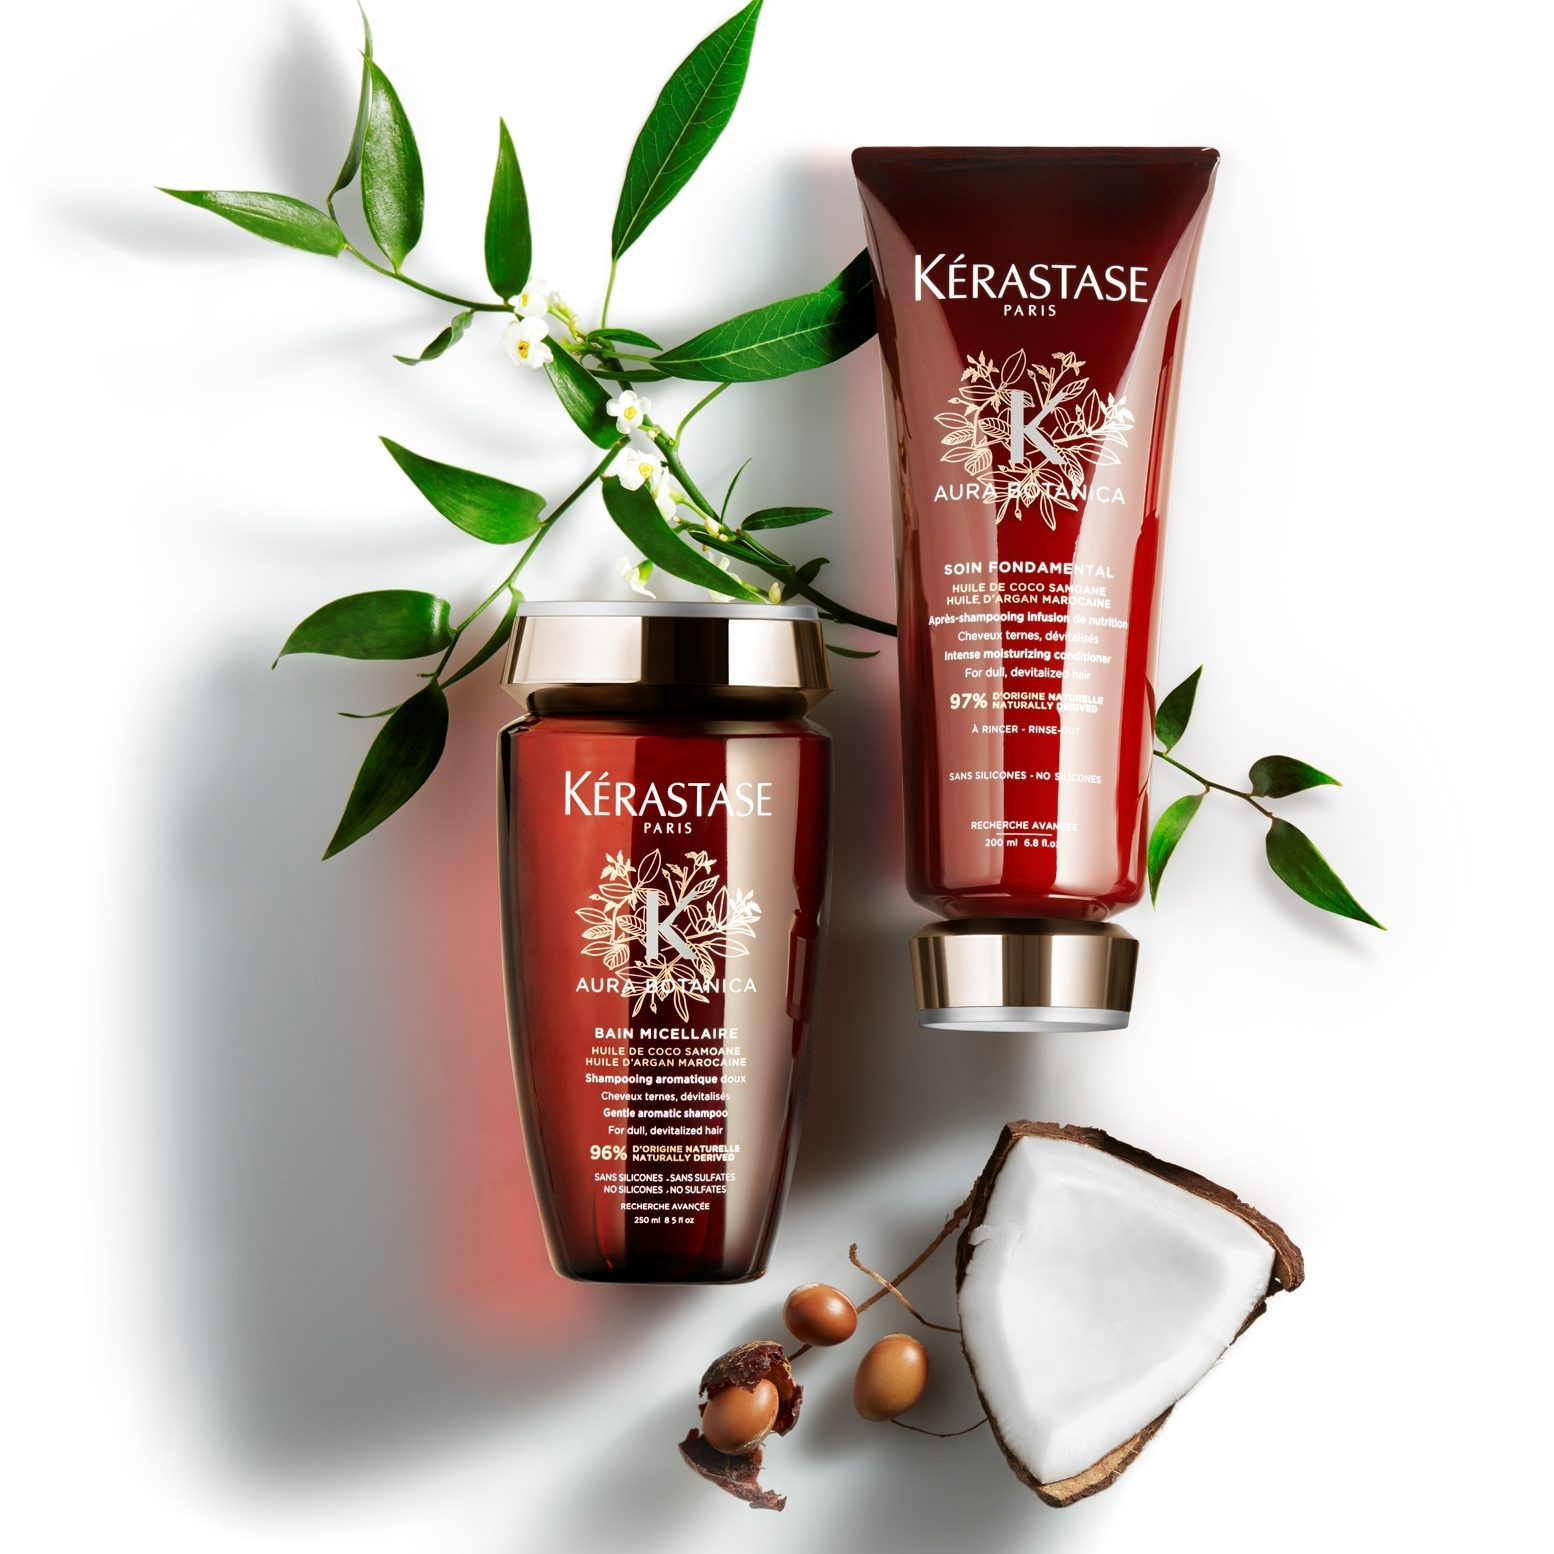 Kerastase Products - buy at HS Studio Spa and Salon in Halifax NS